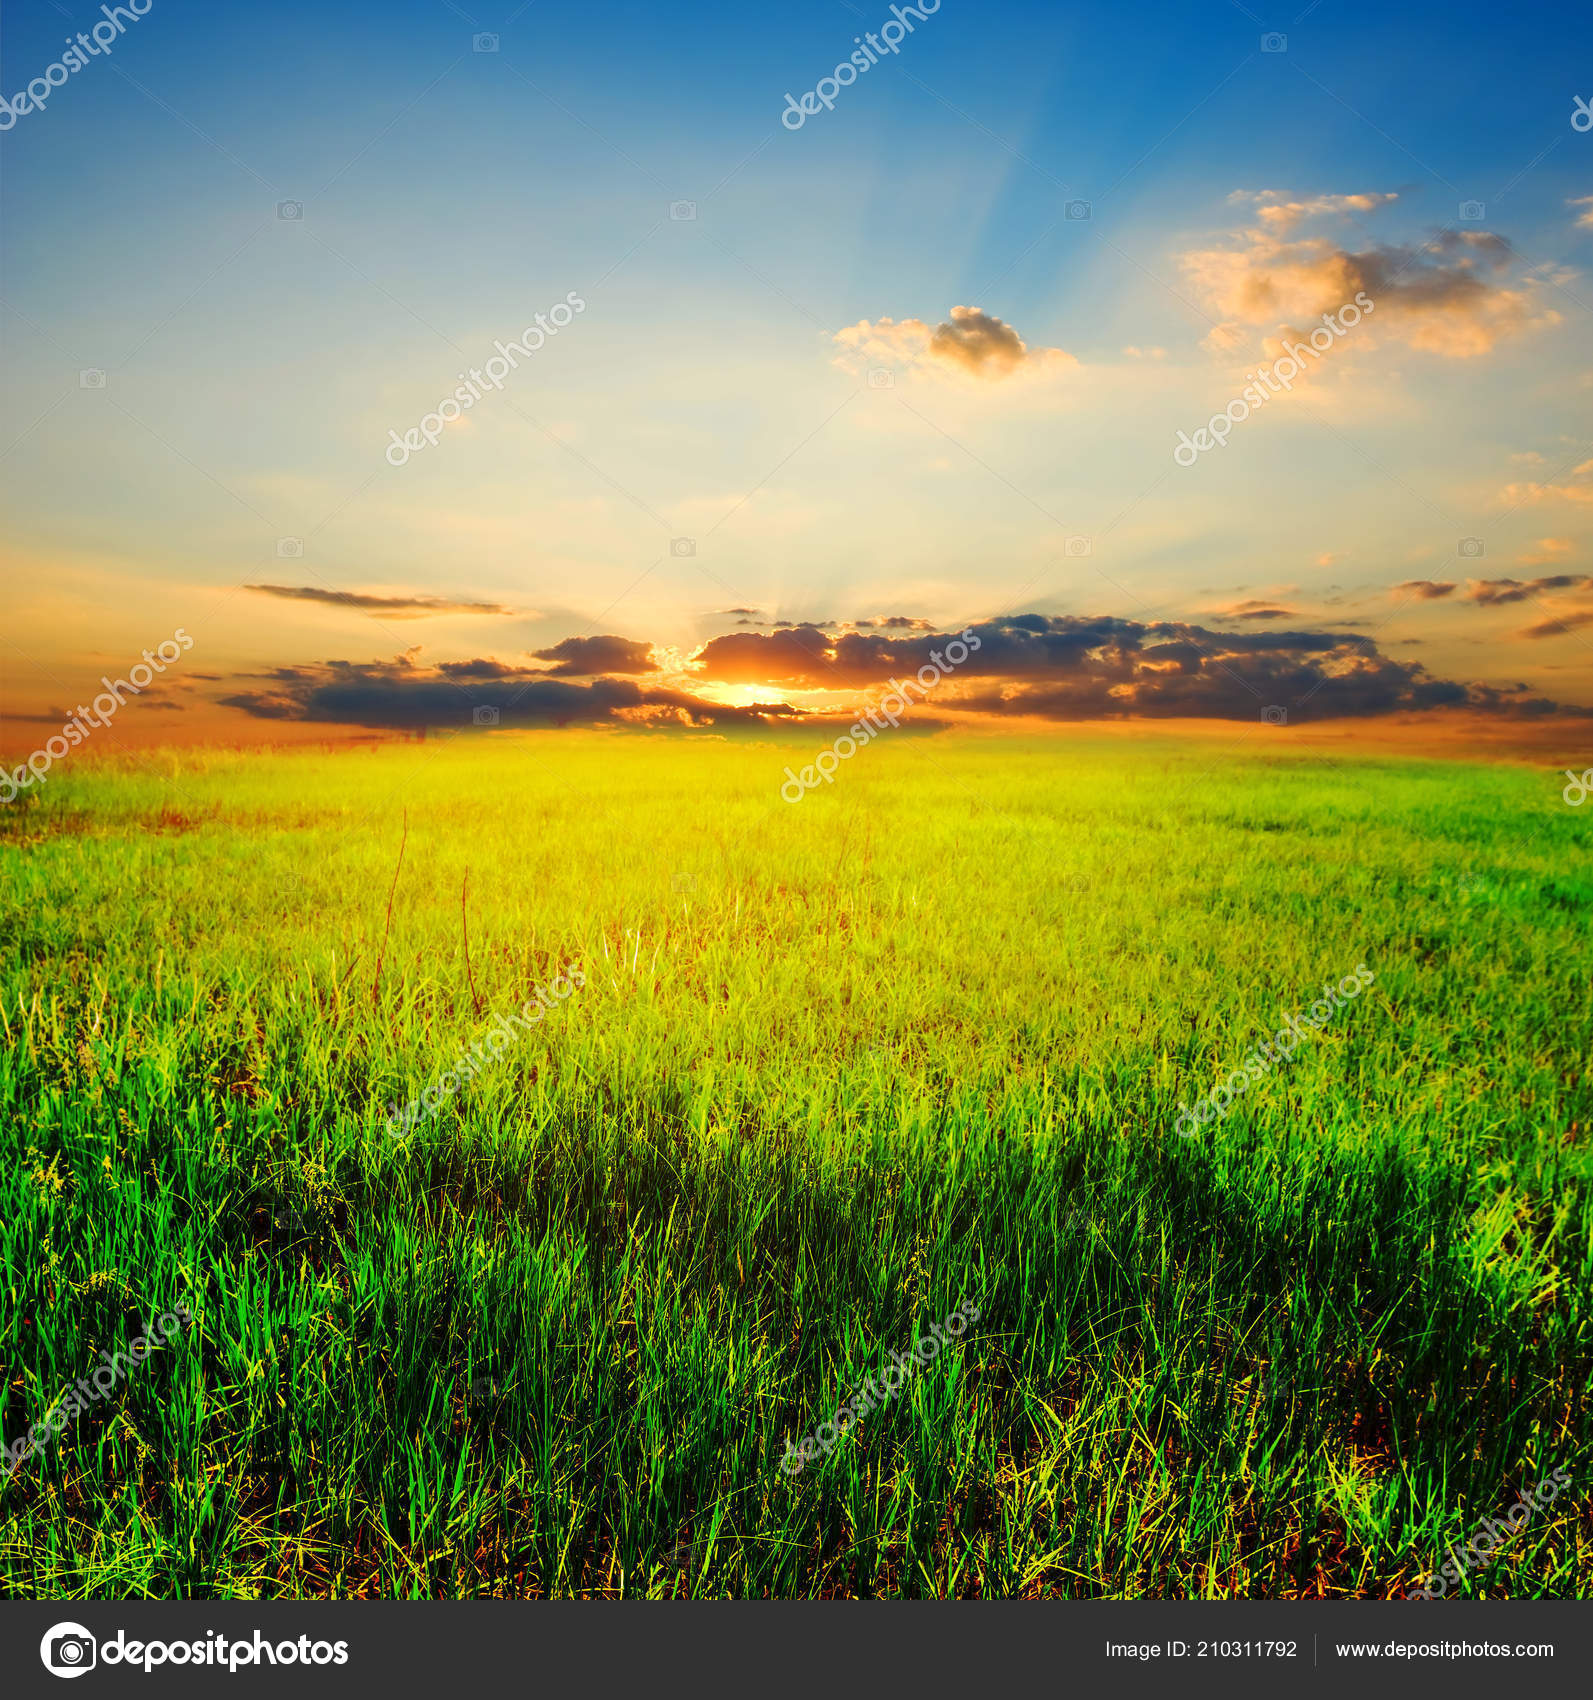 summer plain green grass